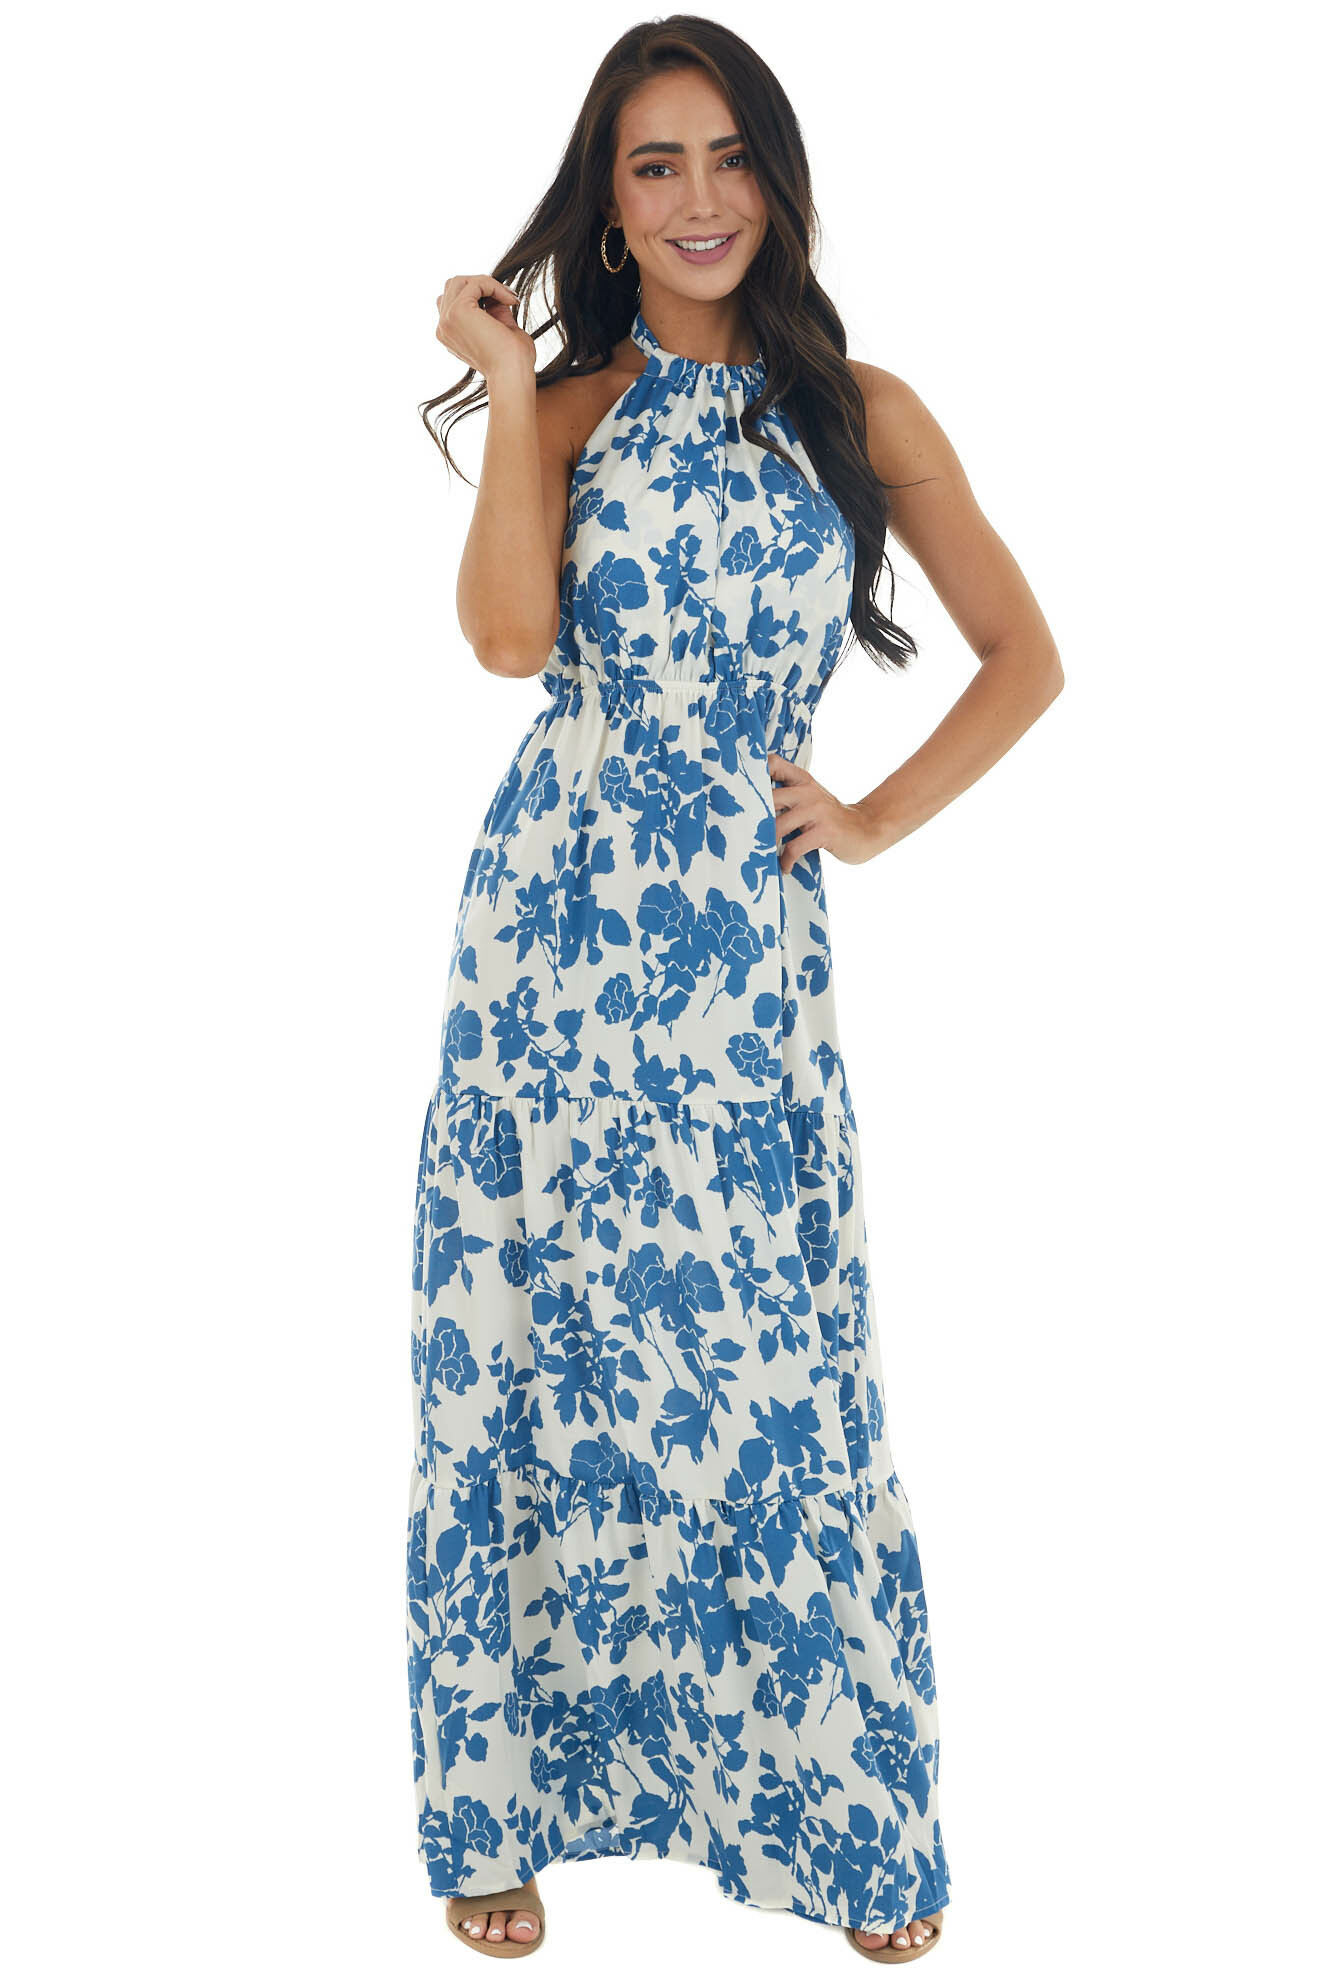 Steel Blue and Ivory Floral Print Maxi Dress